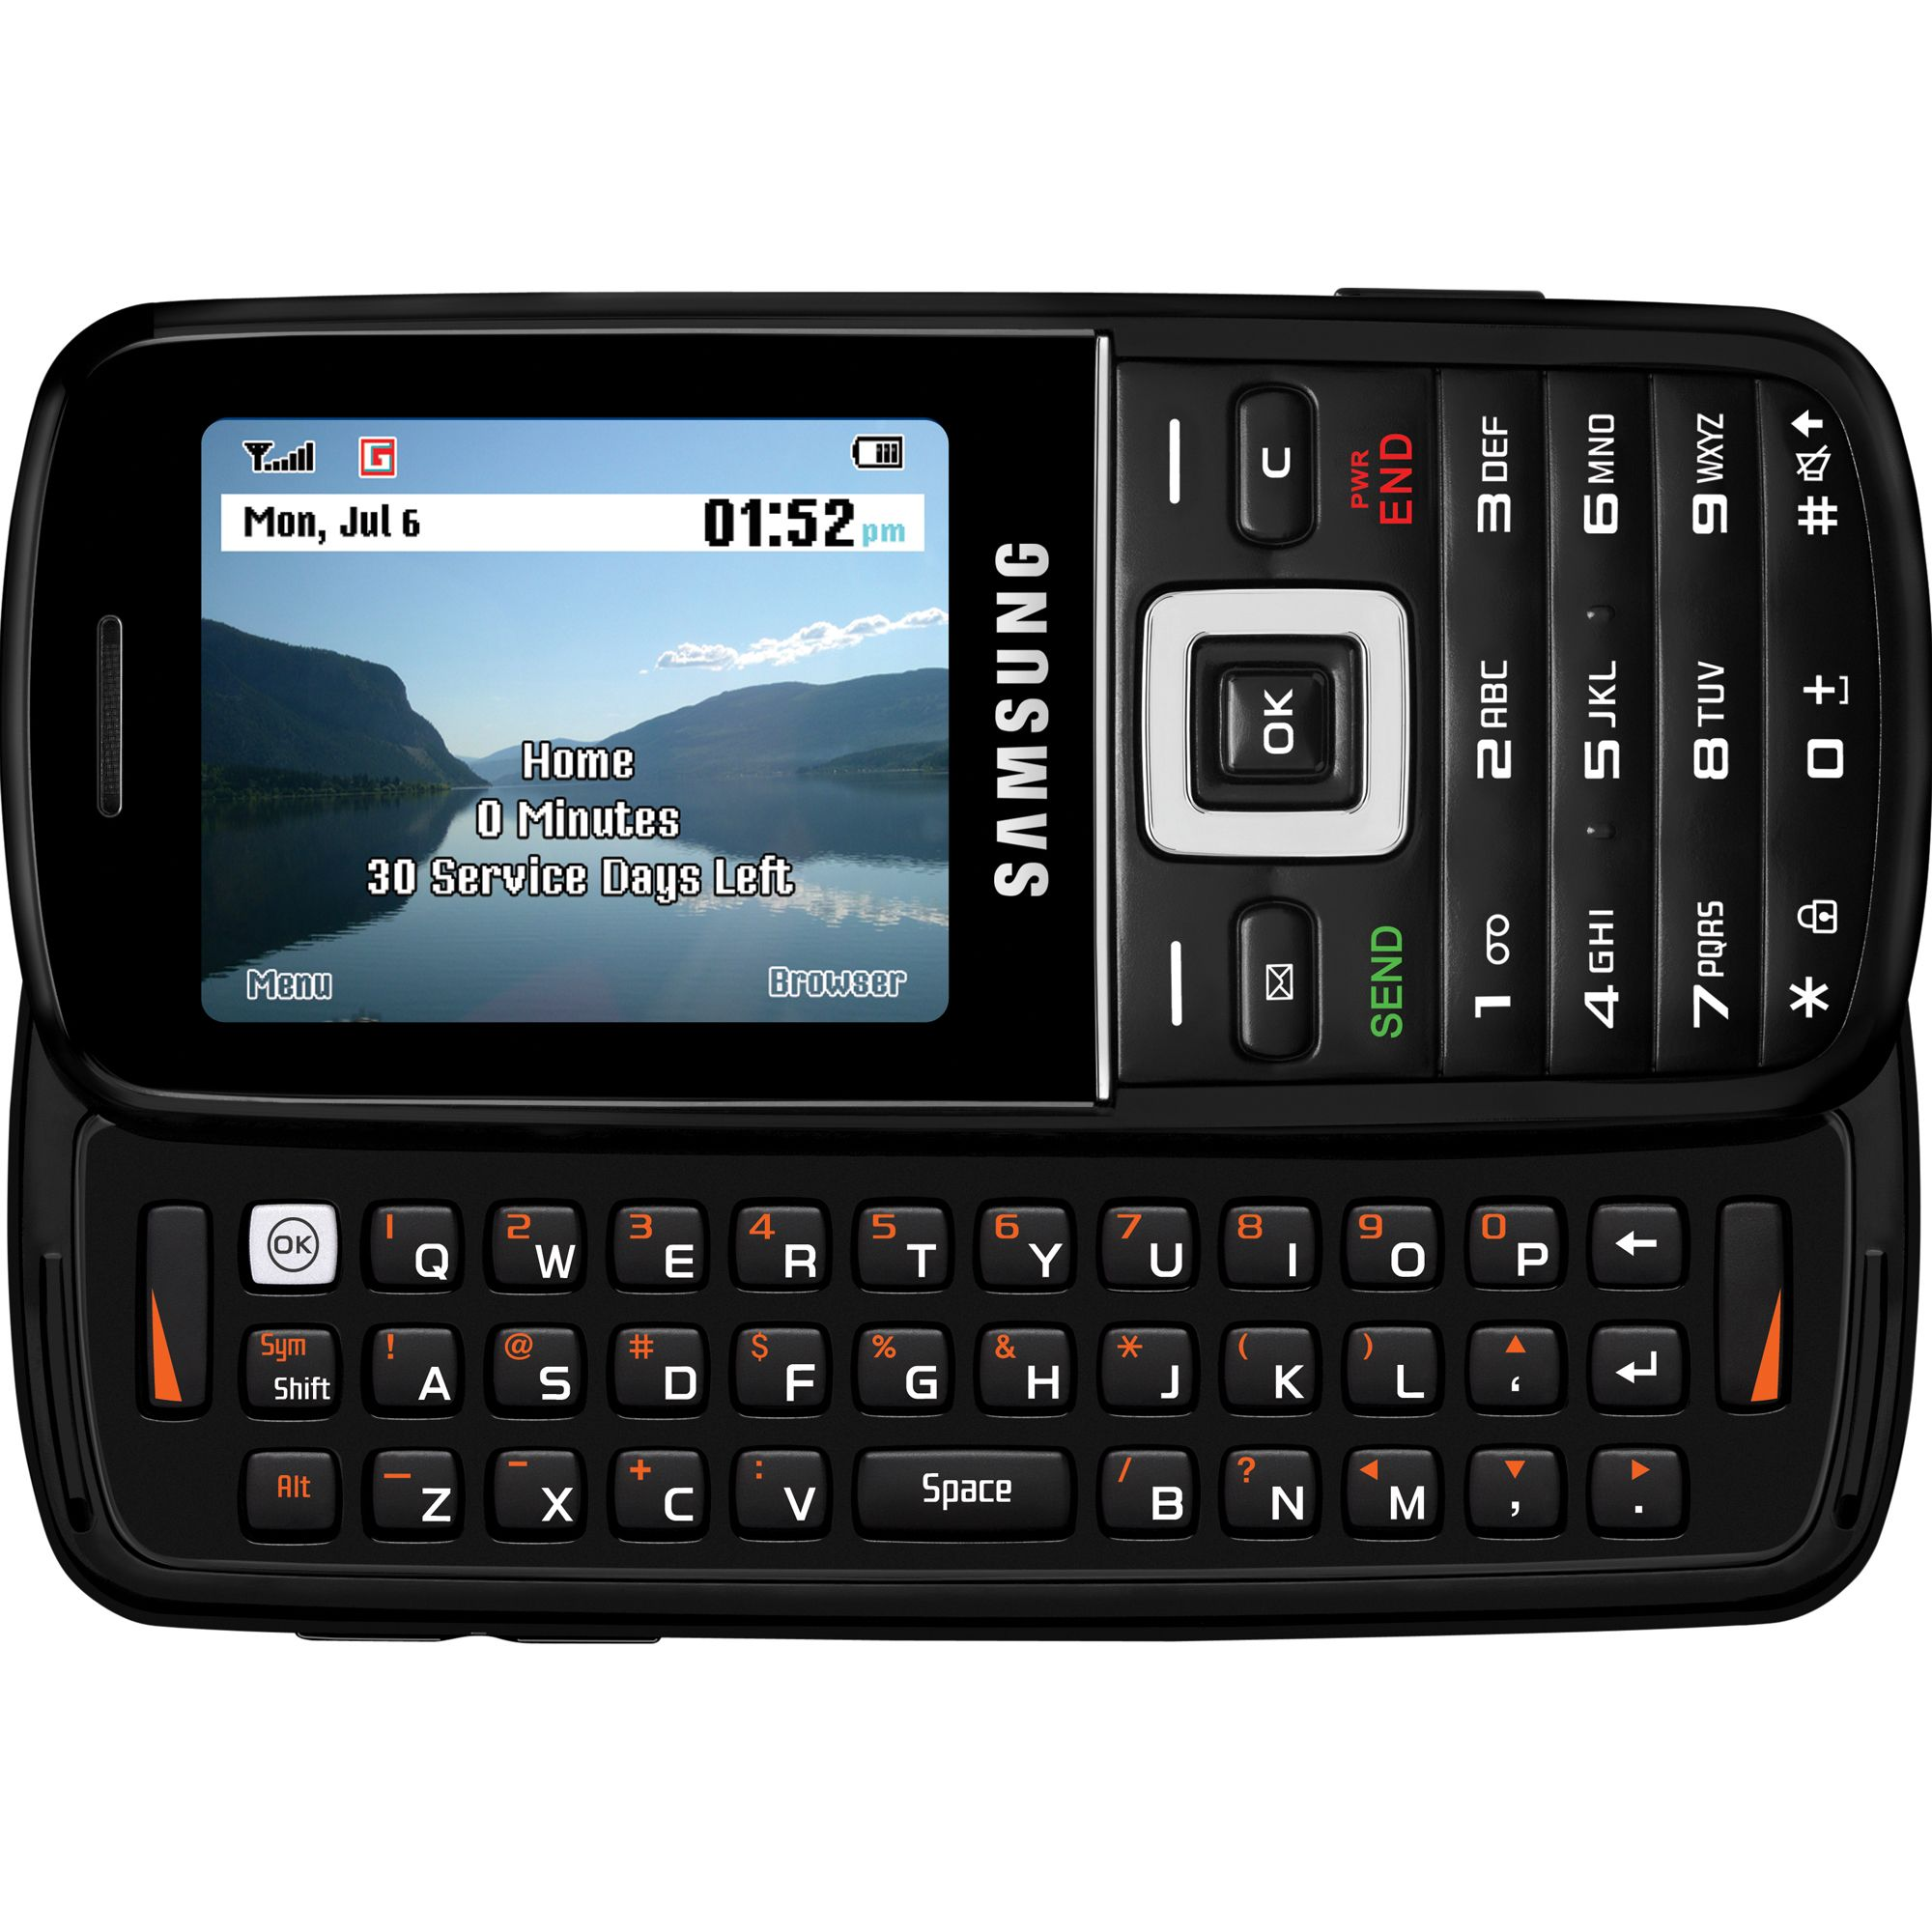 Net10 Samsung T401g Pre-paid Cell Phone - Tvs & Electronics Phones